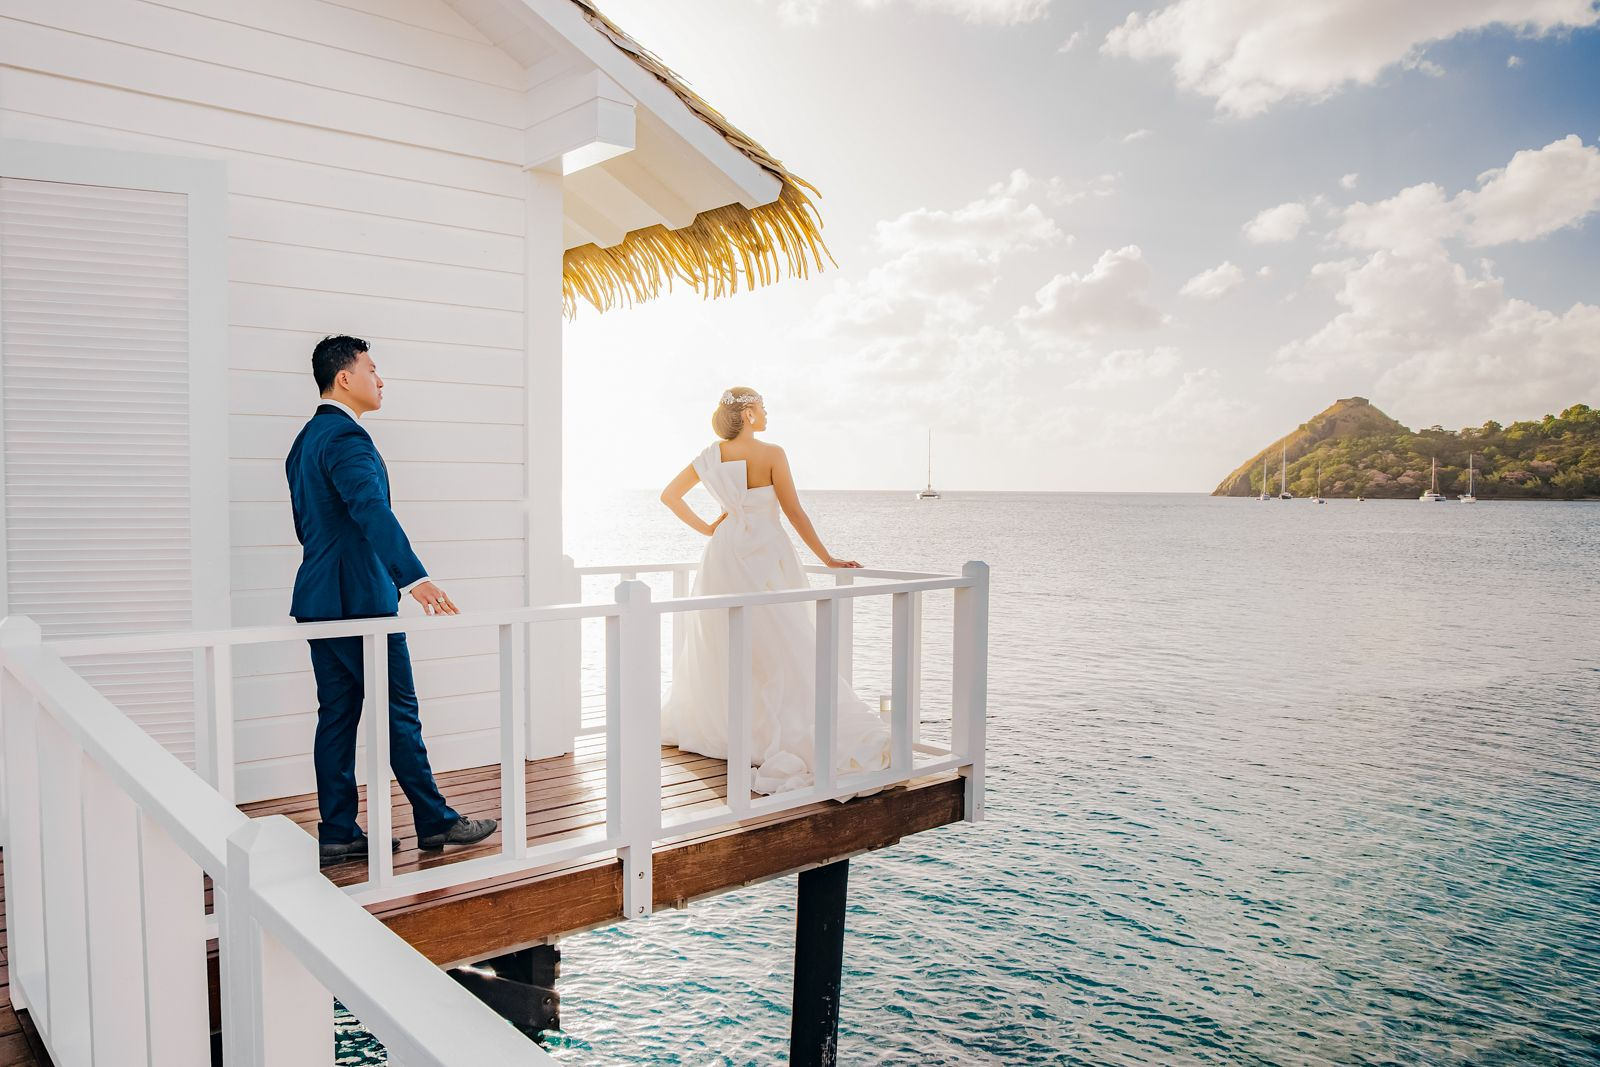 Sandals Chen Wedding Overwater Chapel